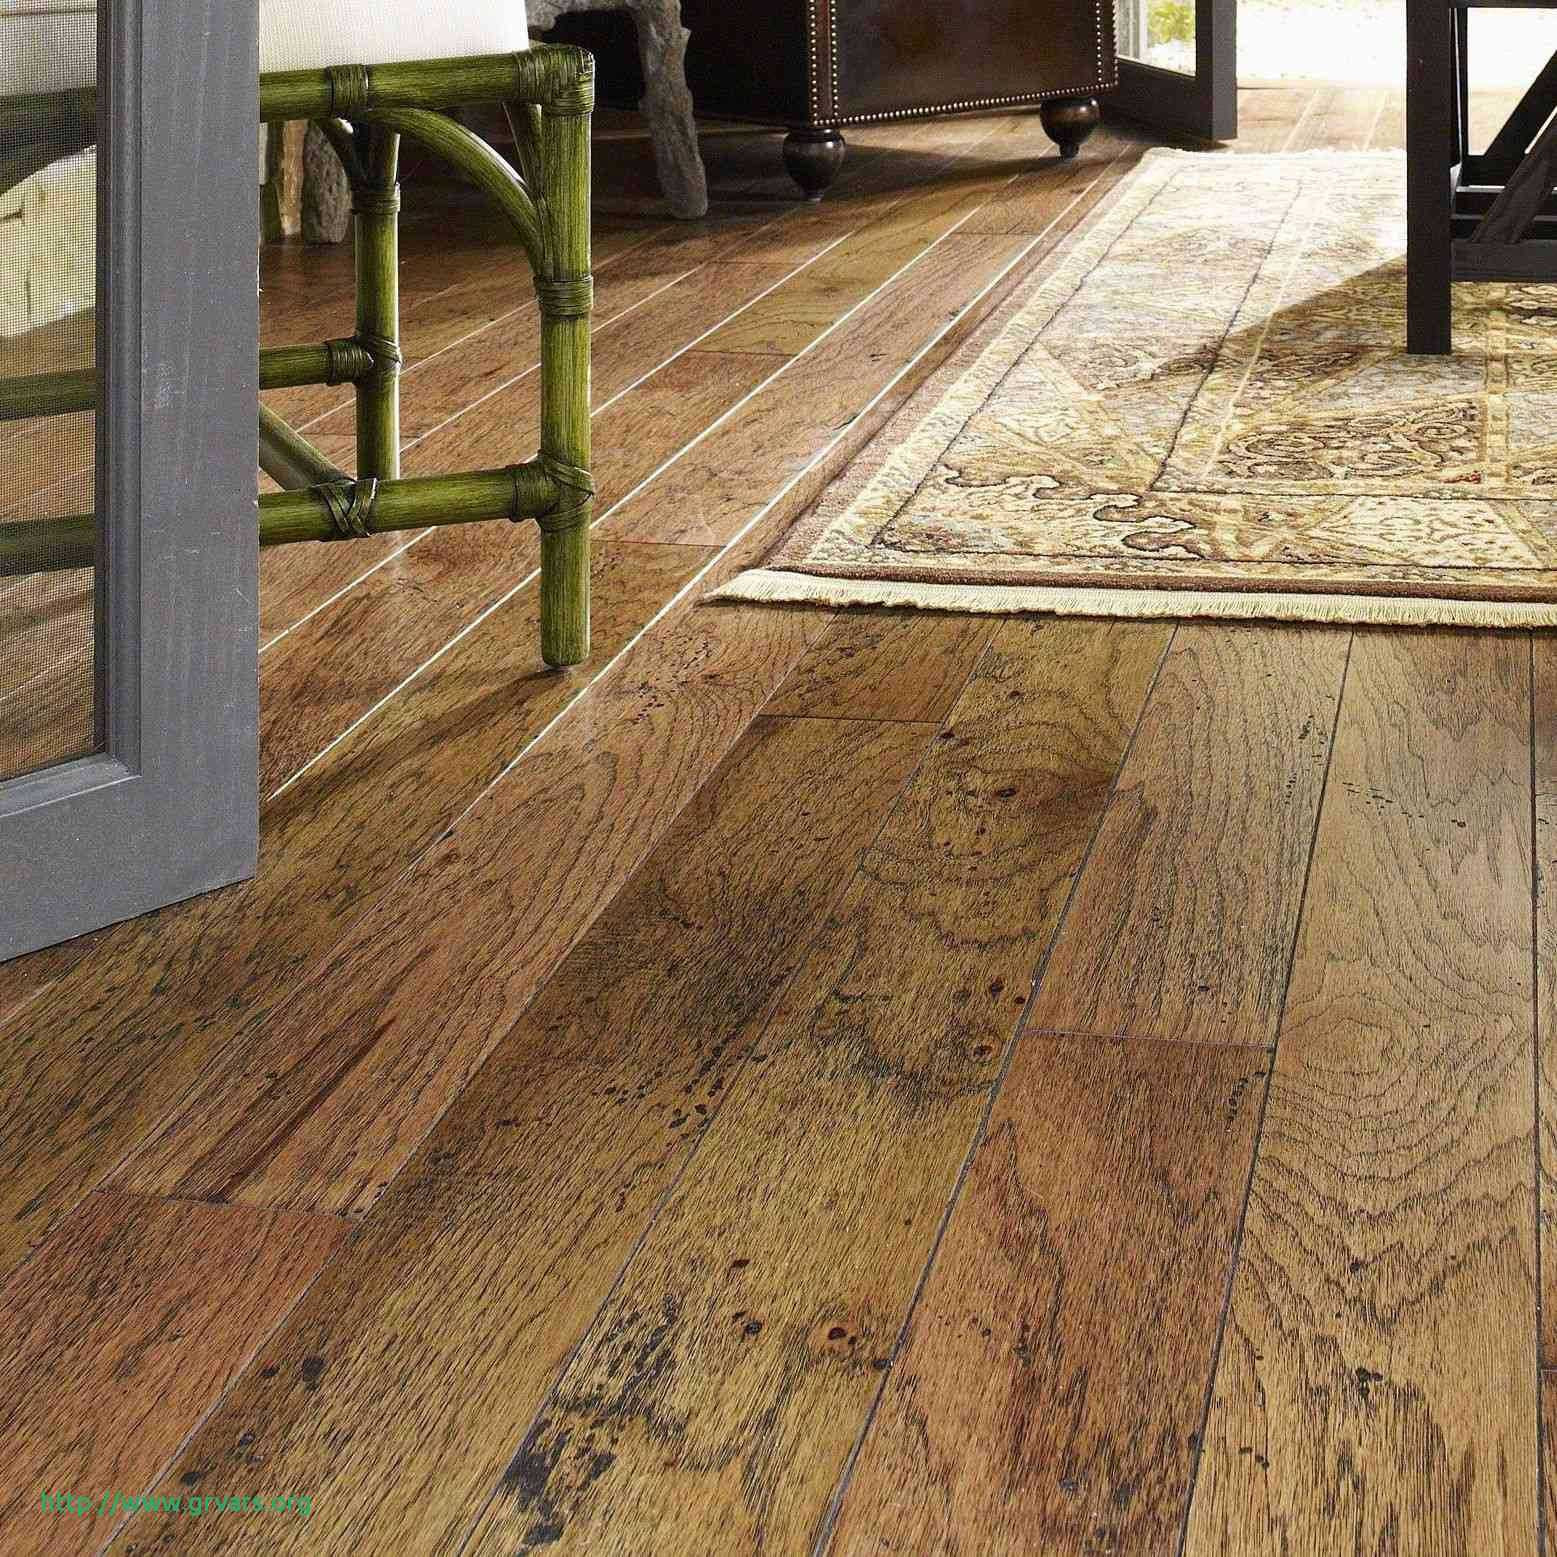 floating hardwood floor over tile of 16 frais how to install a pergo floor ideas blog with hardwood floor designs new best type wood flooring best floor floor wood floor wood 0d